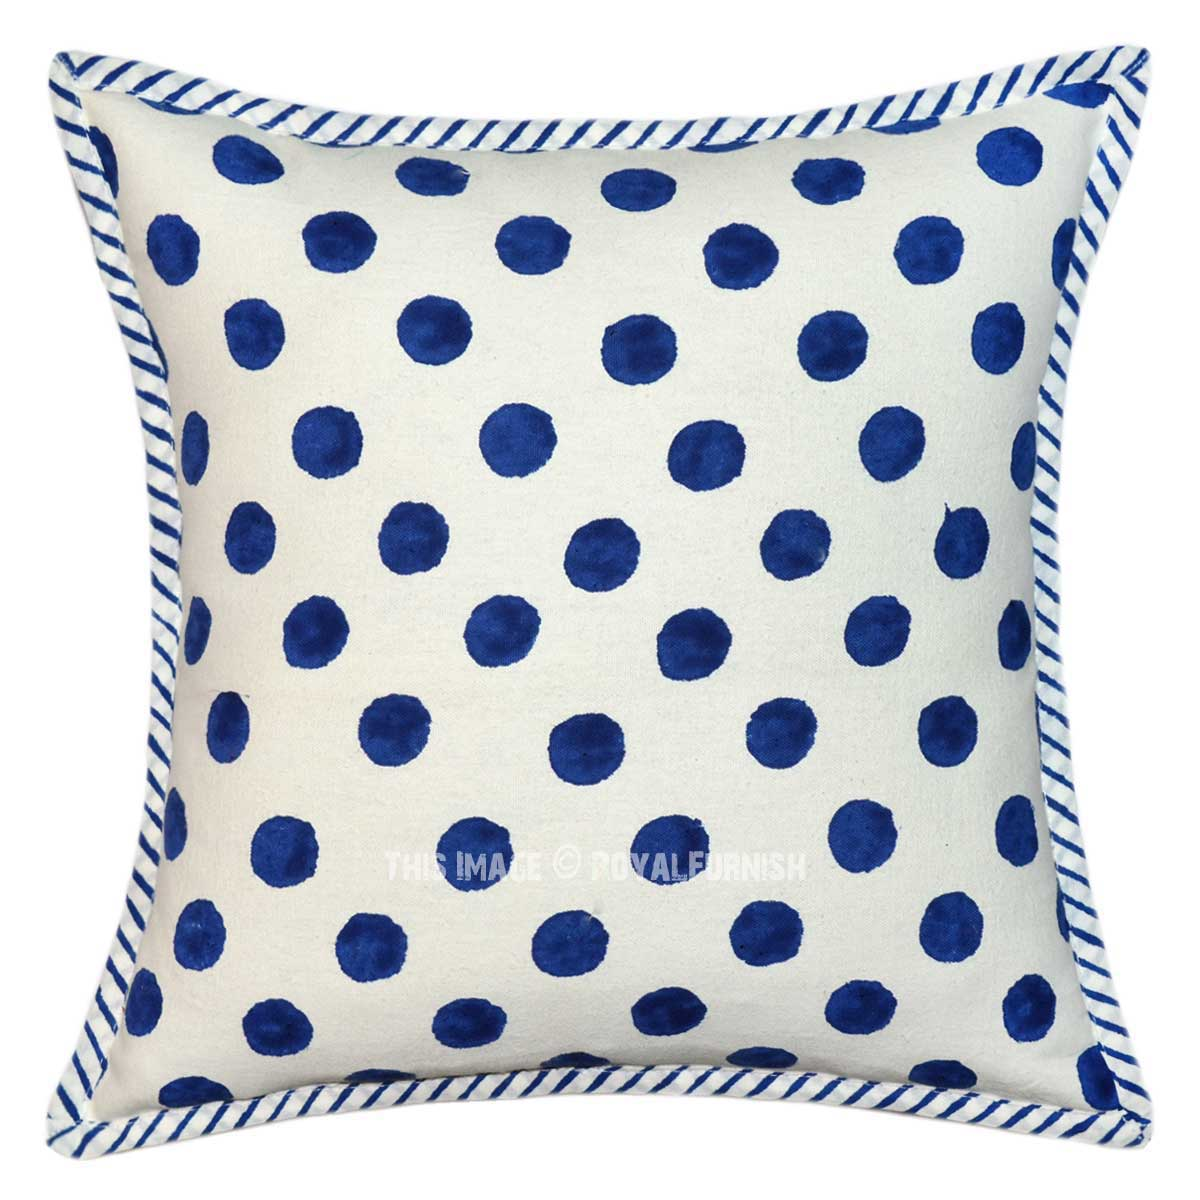 White And Blue Polka Dots Canvas Throw Pillow Cover